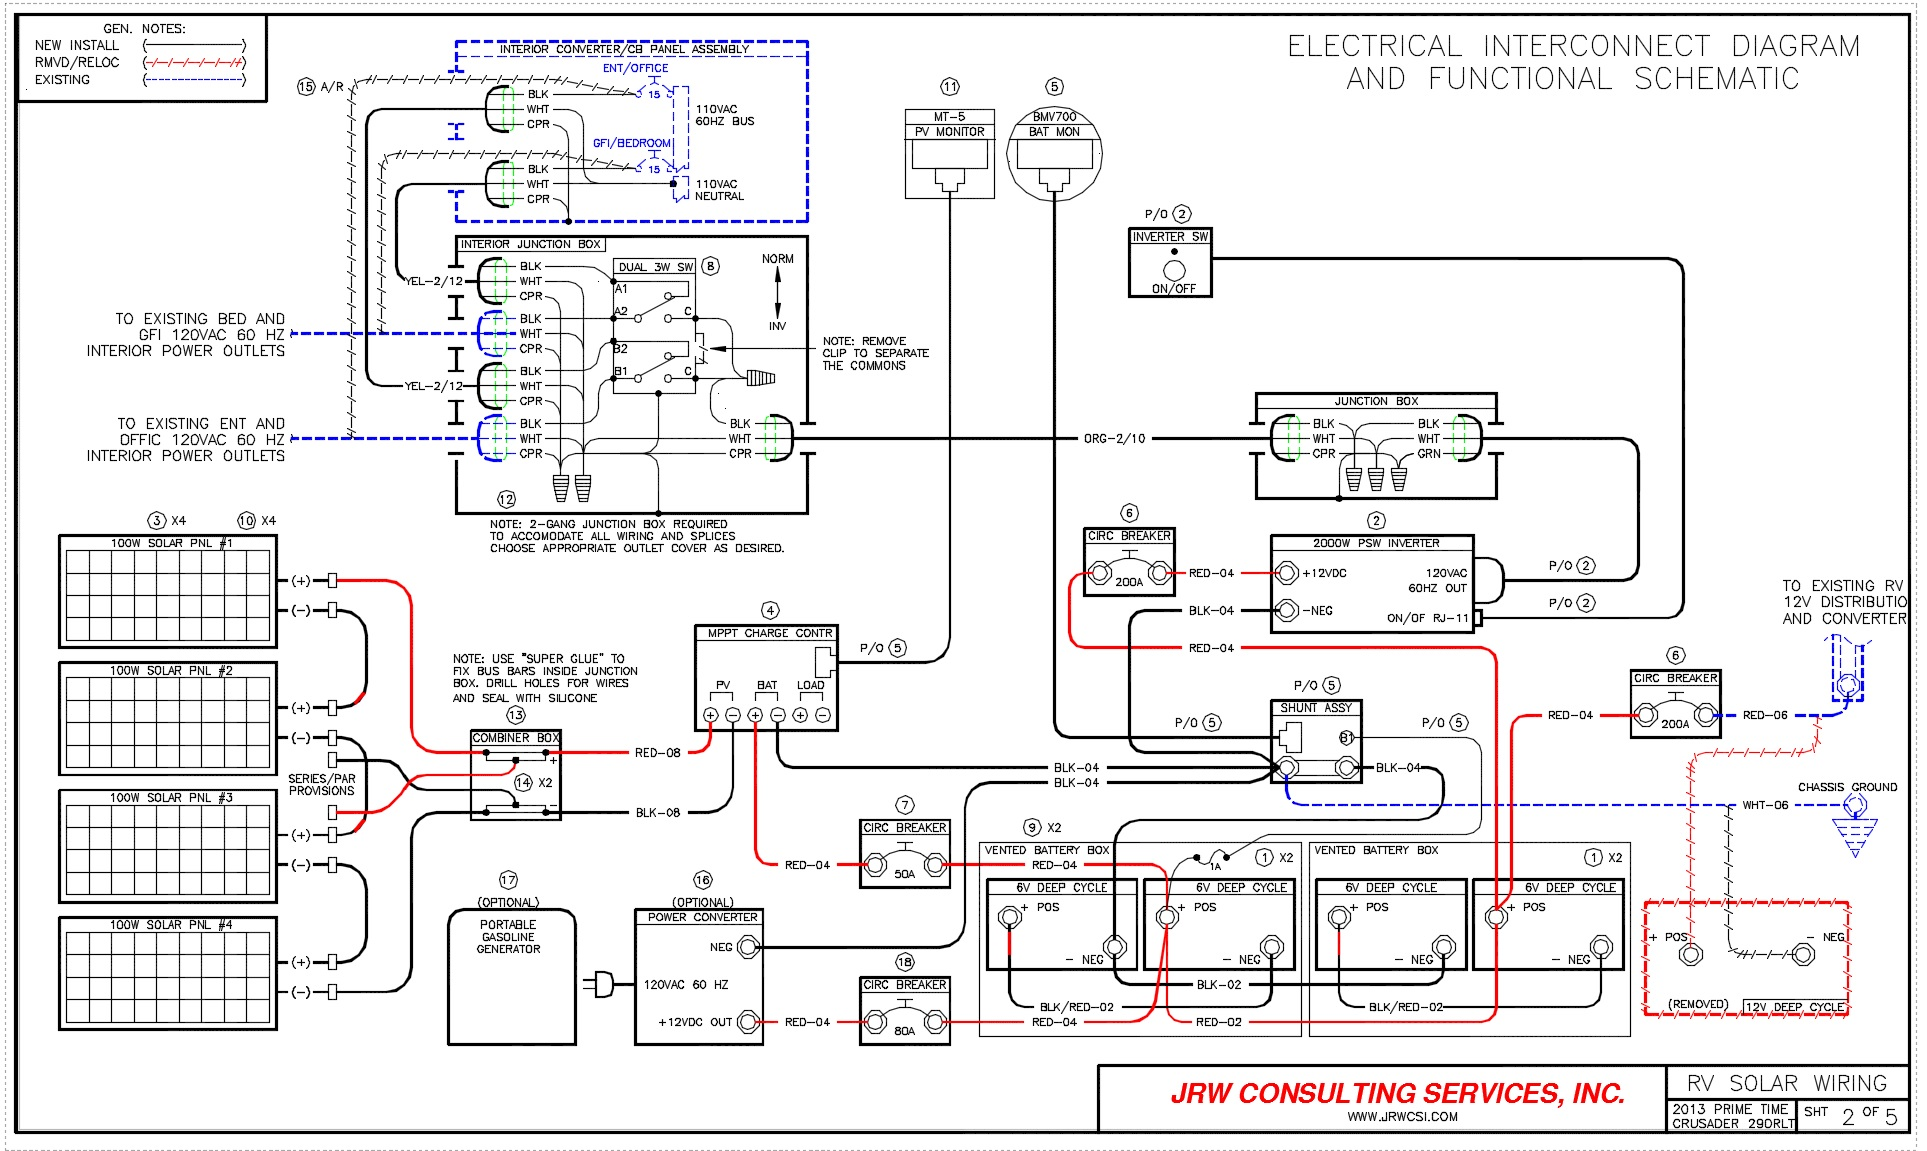 RV SOLAR SHT 22 rv power upgrade live, breathe, move typical 5th wheel rv wiring diagram at soozxer.org